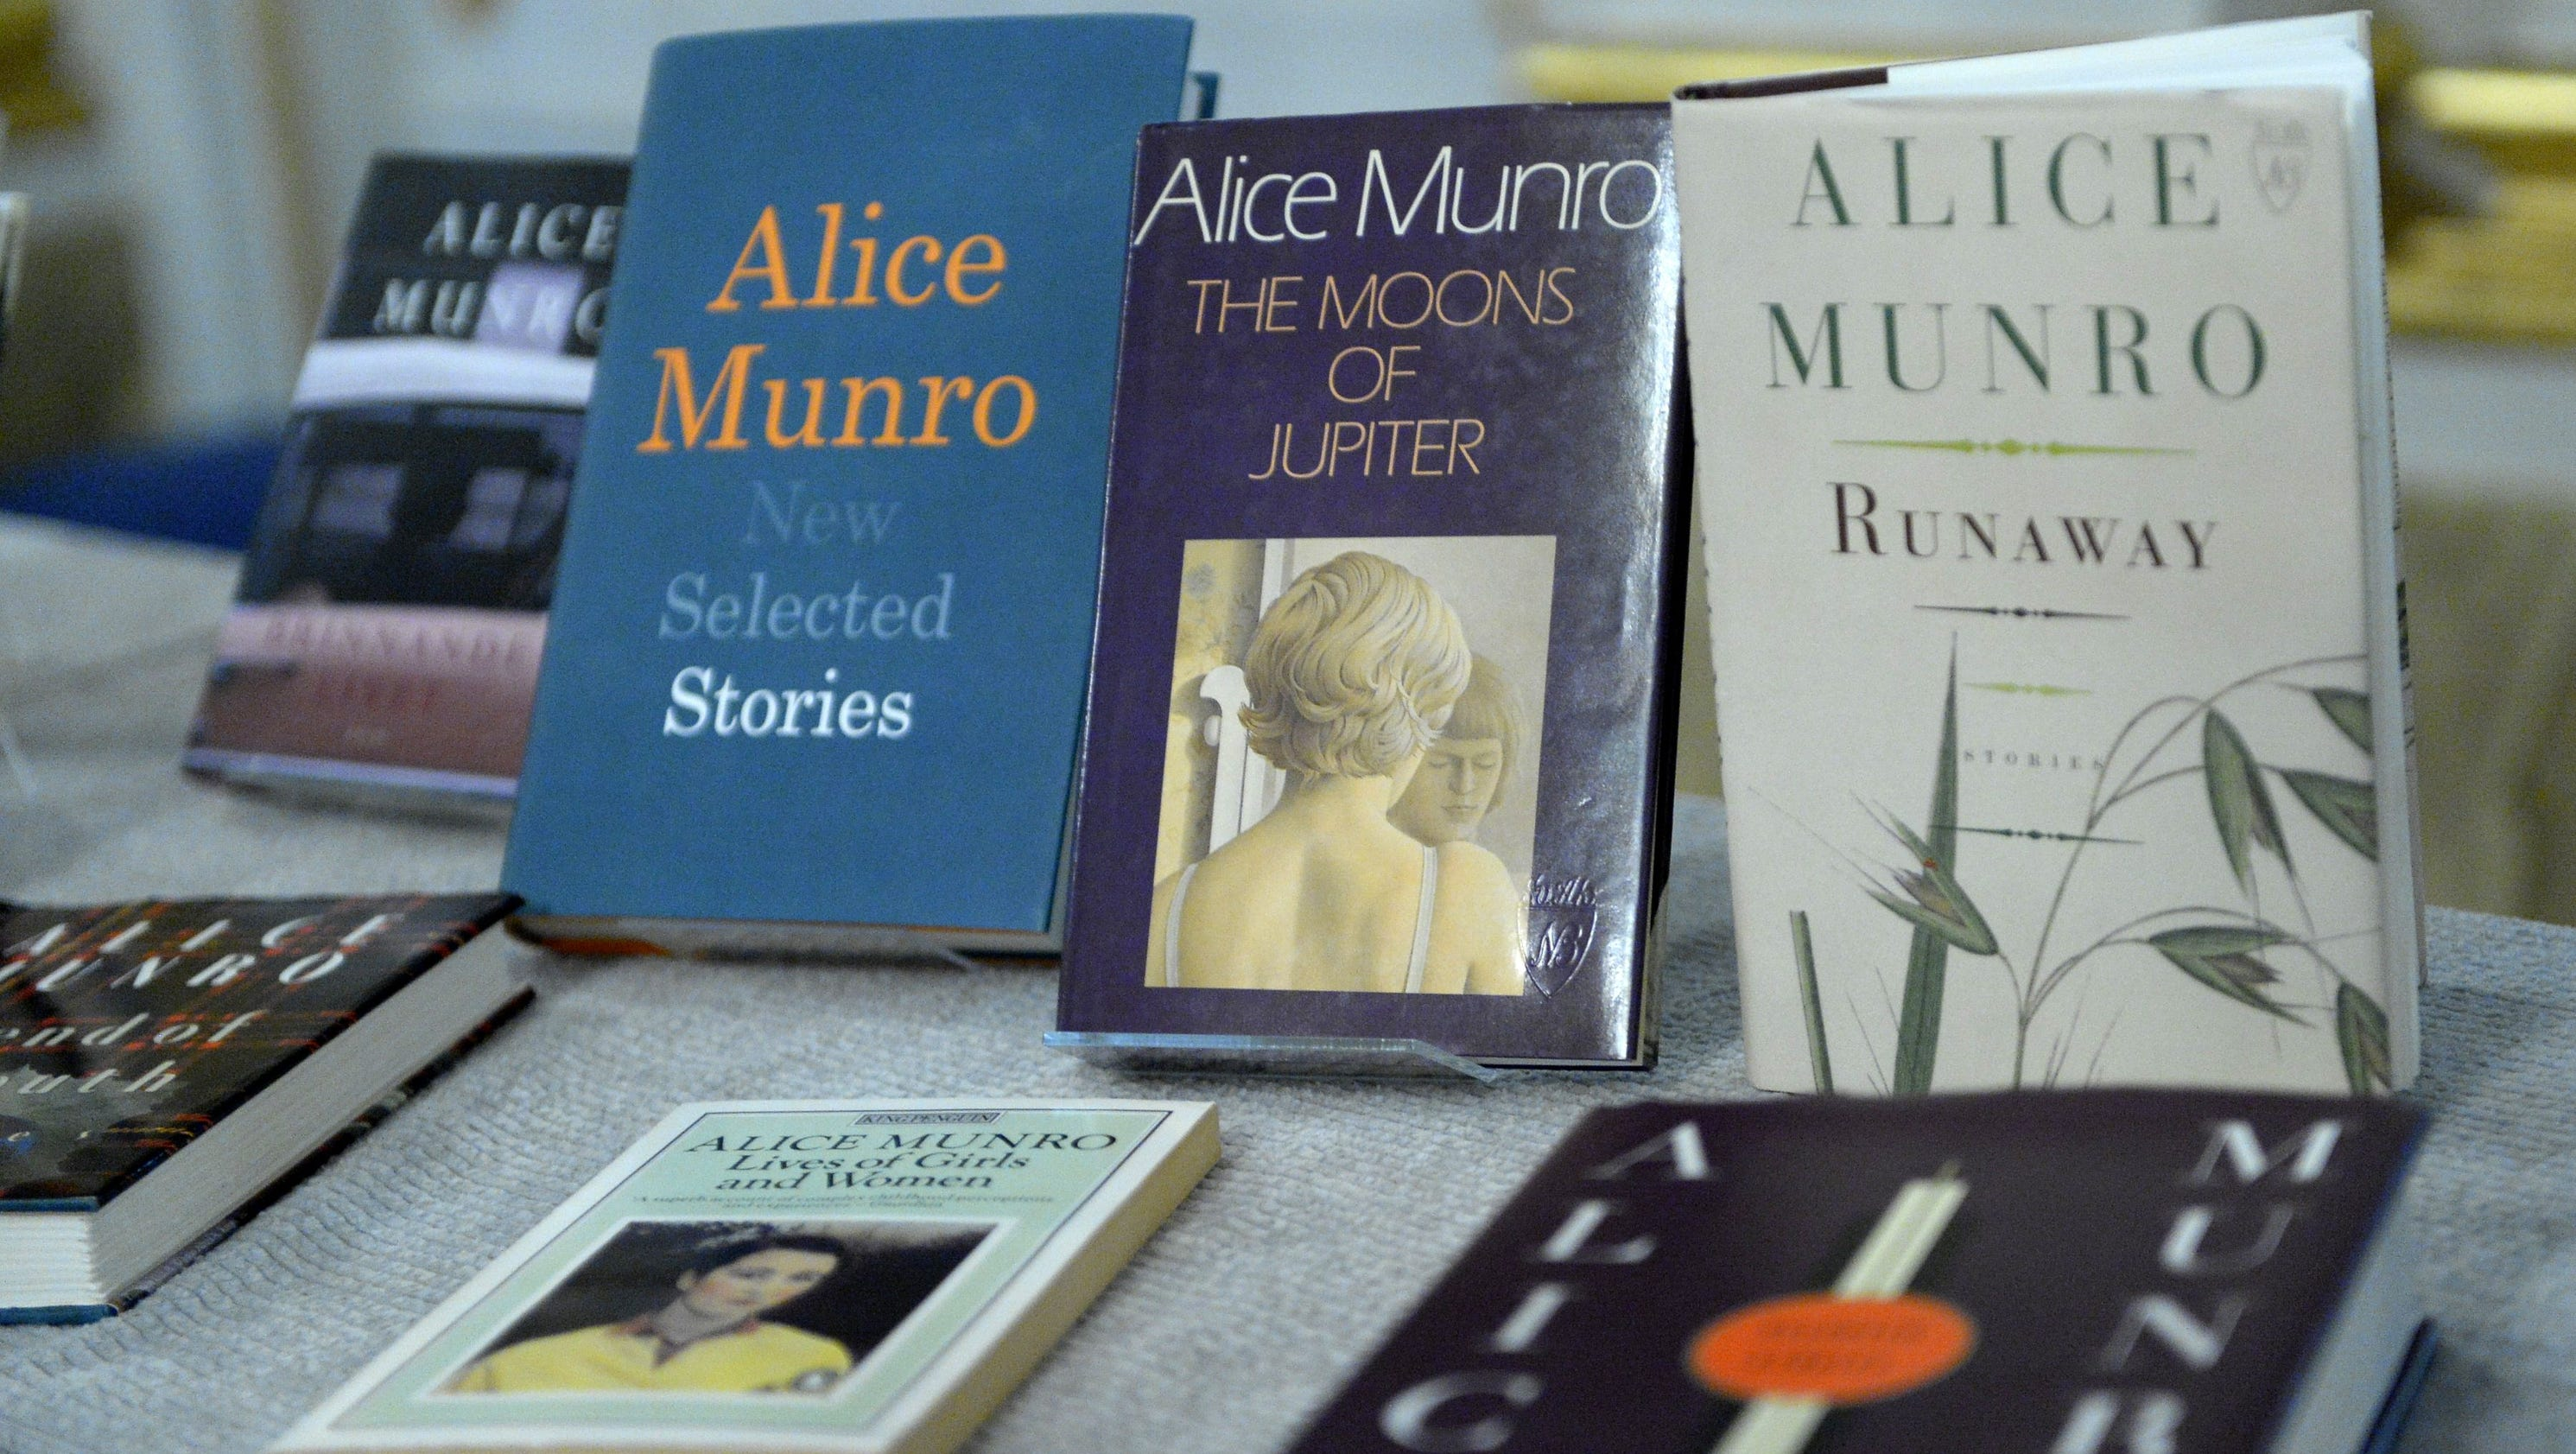 boys and girls by alice munro unfair The first main character in the story boys and girls by alice munro is the  narrator while she does not have a name, she is a youthful vibrant voice  throughout.